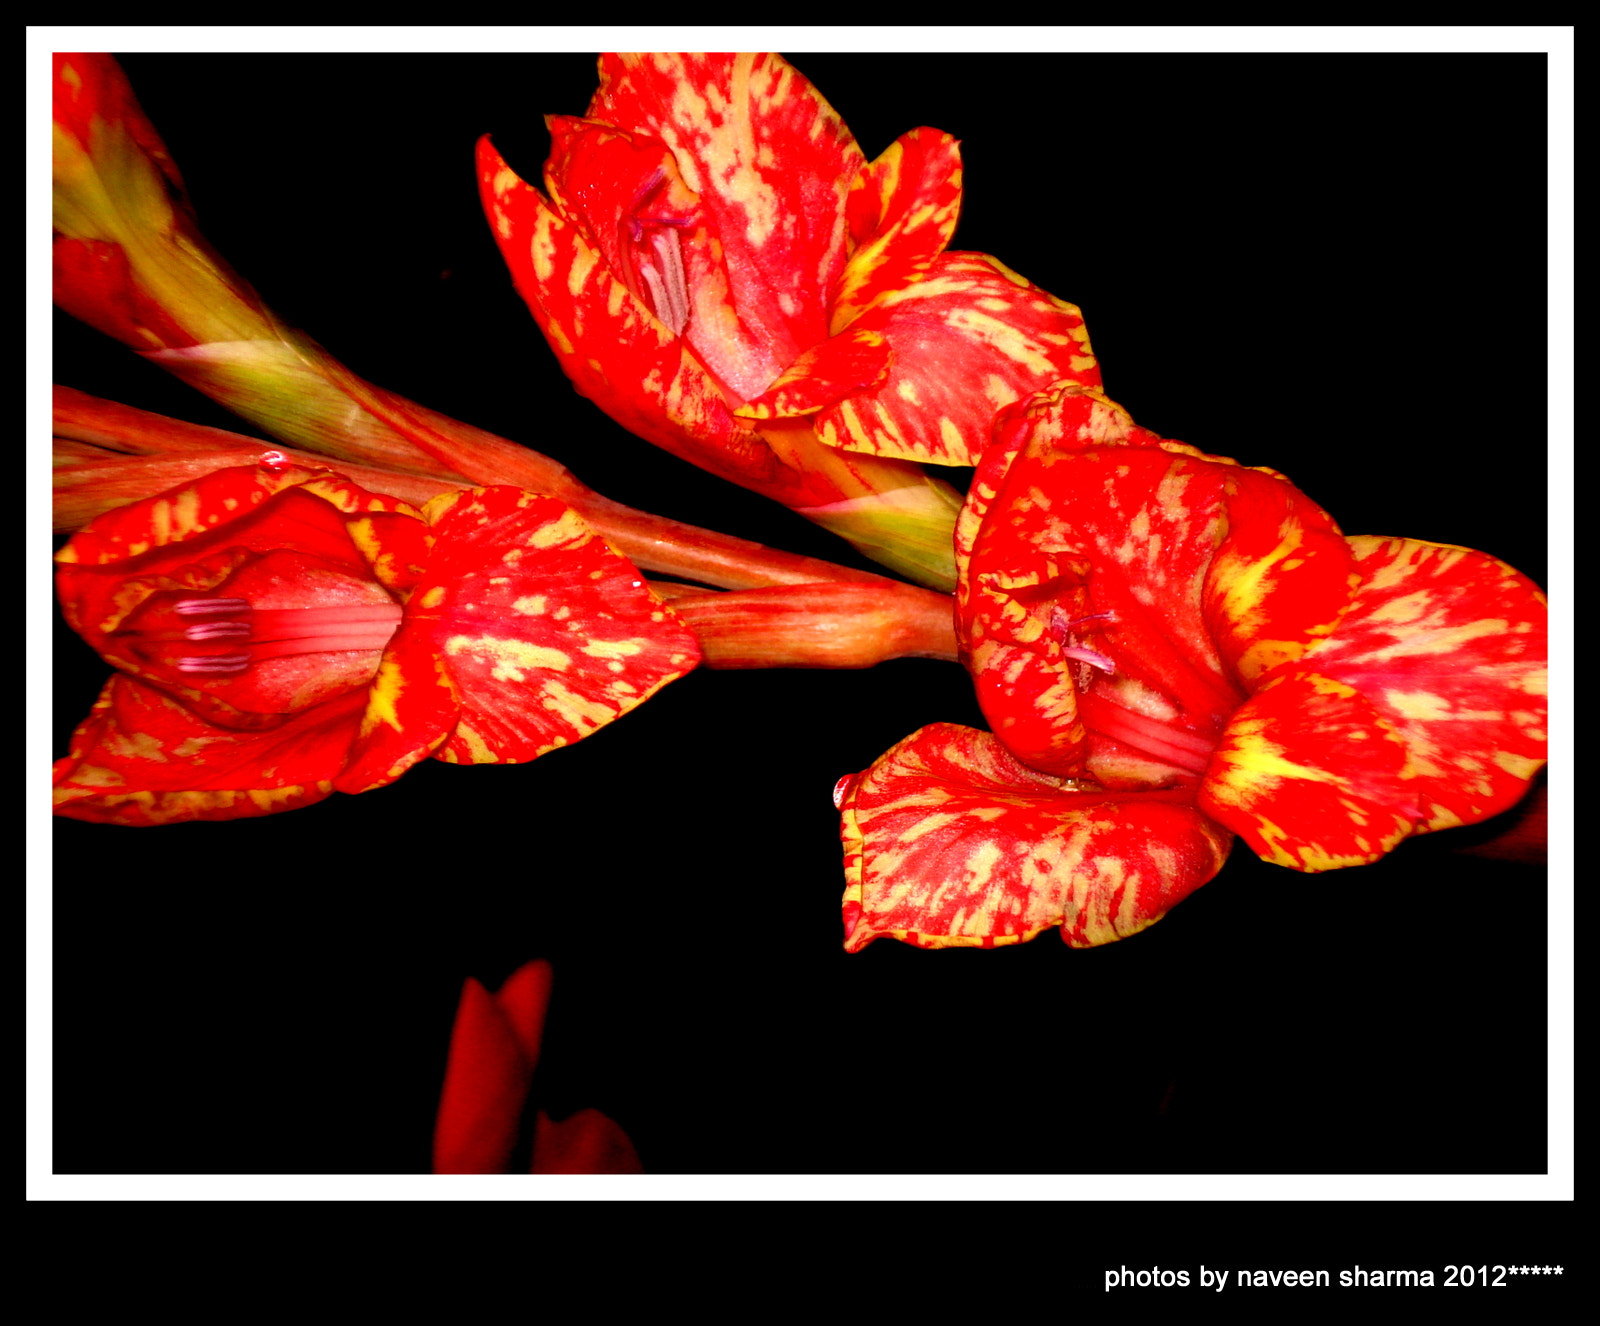 Photograph SPOTTED GLADIOLUS by naveen sharma on 500px